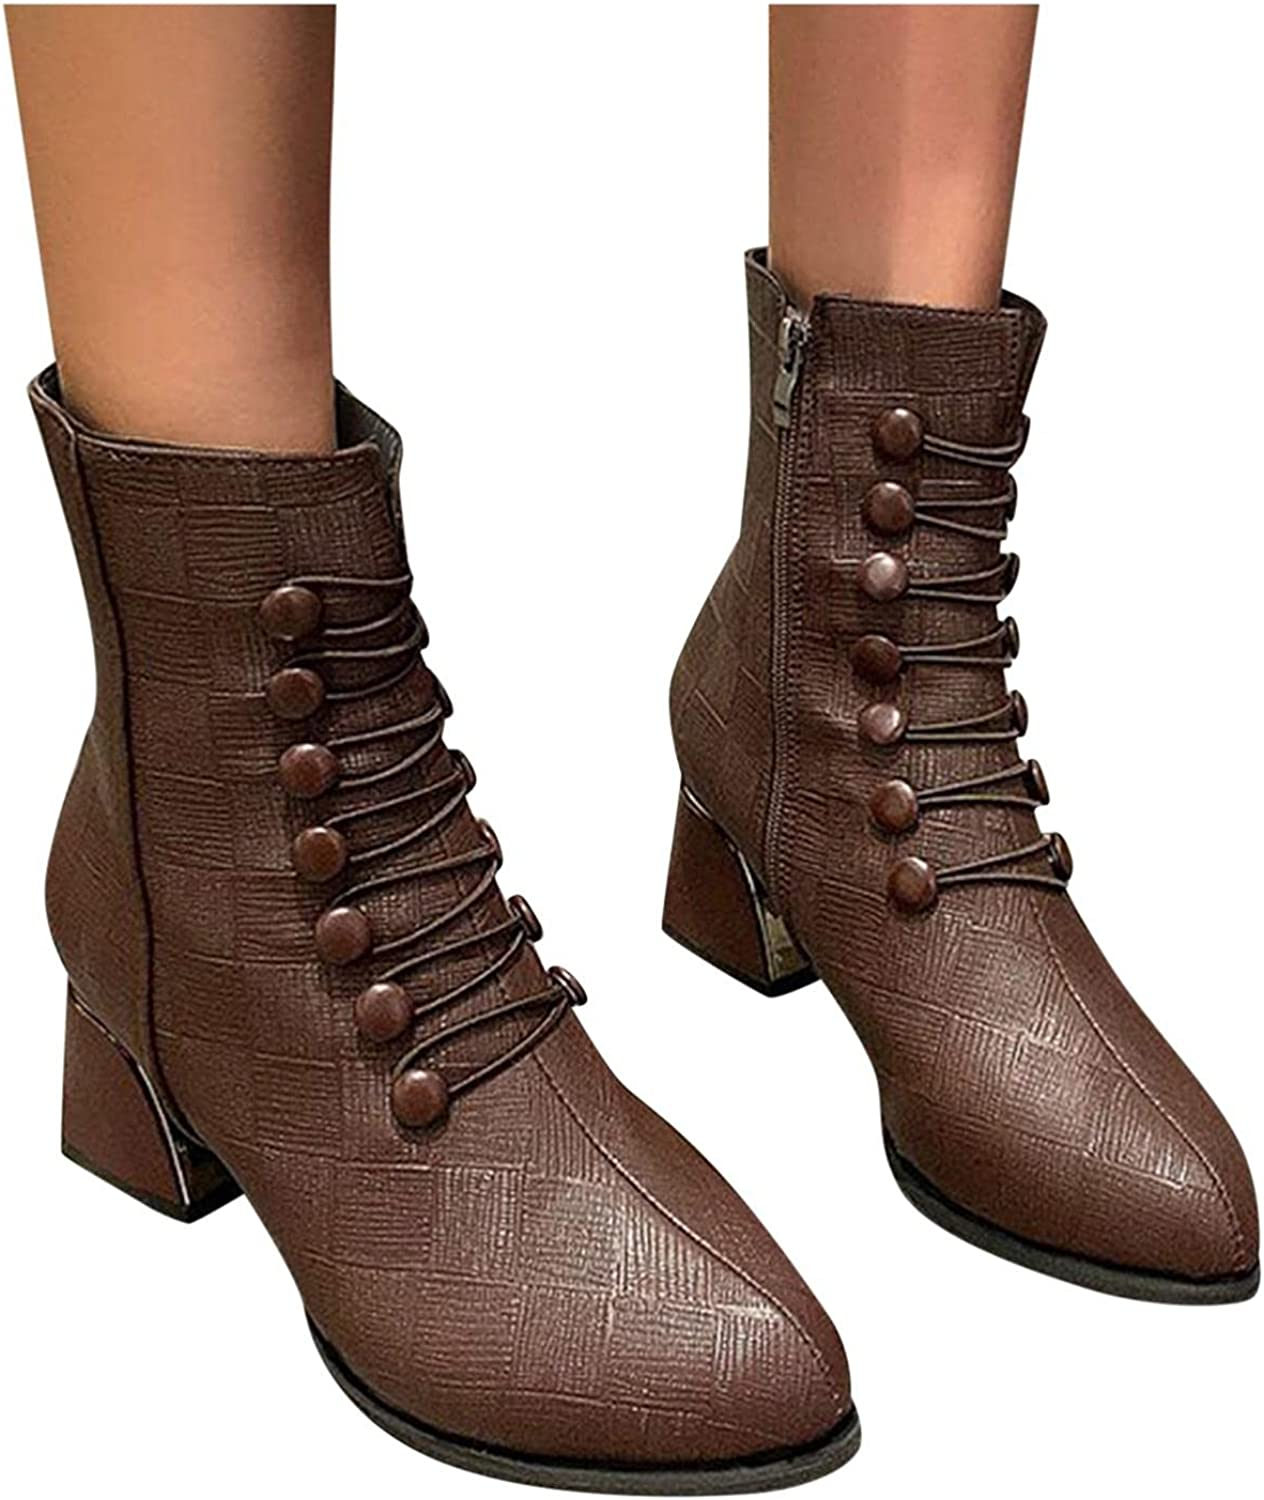 Hbeylia Dress Boots For Women Ladies Fashion Casual Lace Up Leather Round Toe Chunky Block Mid Heels Ankle Booties Combat Boots With Side Zipper Mid Calf Short Riding Boots Halloween Decoration